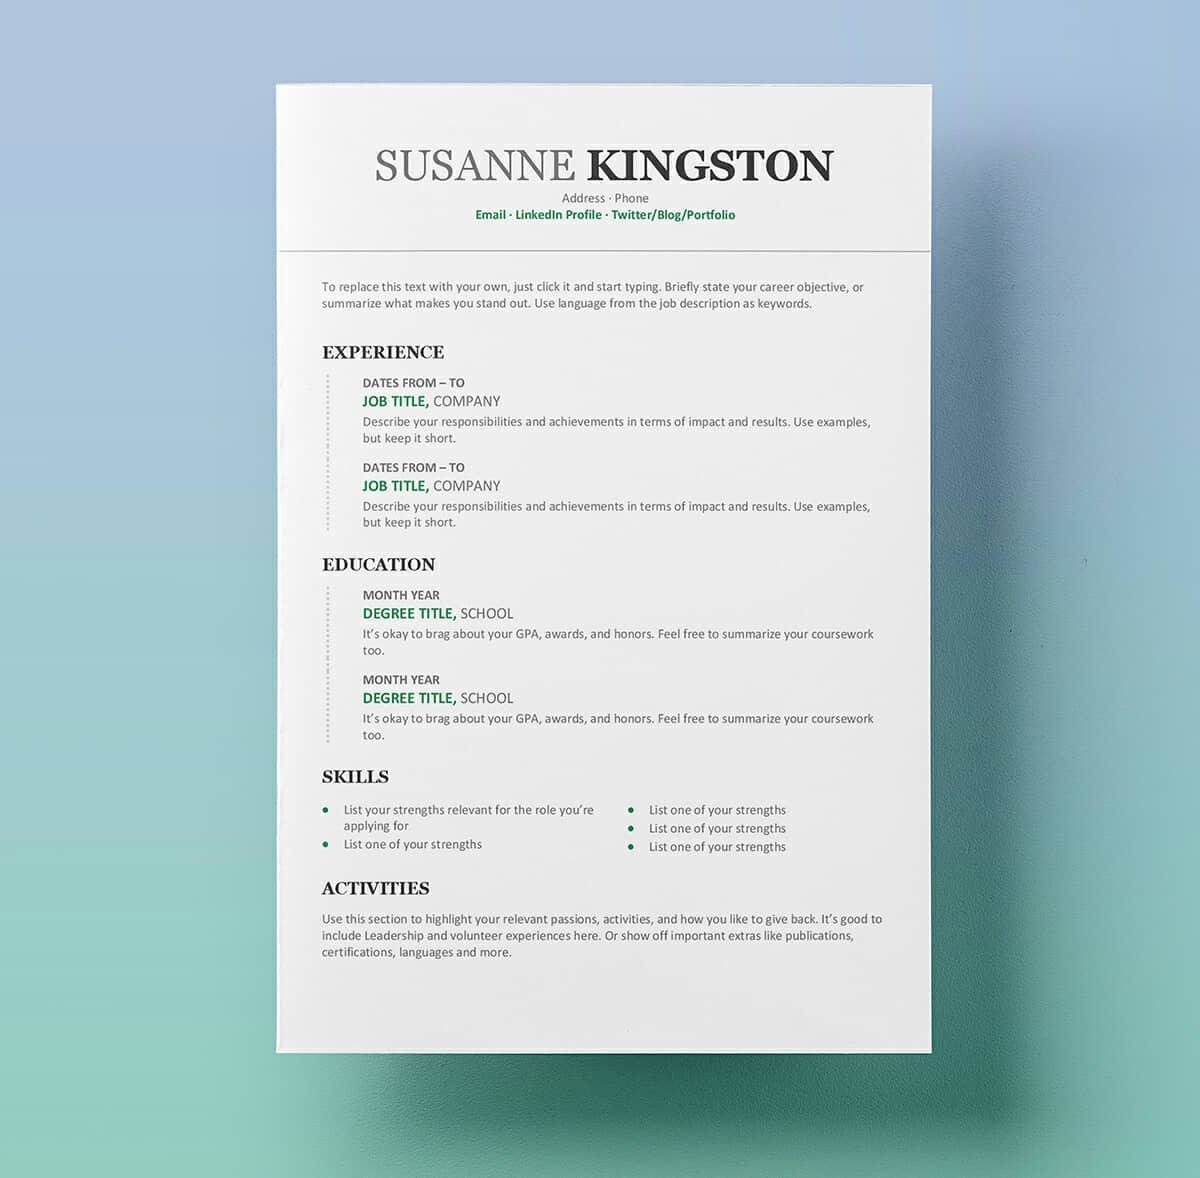 009 Stupendou Word Resume Template Free Concept  Fresher Format Download 2020 MFull